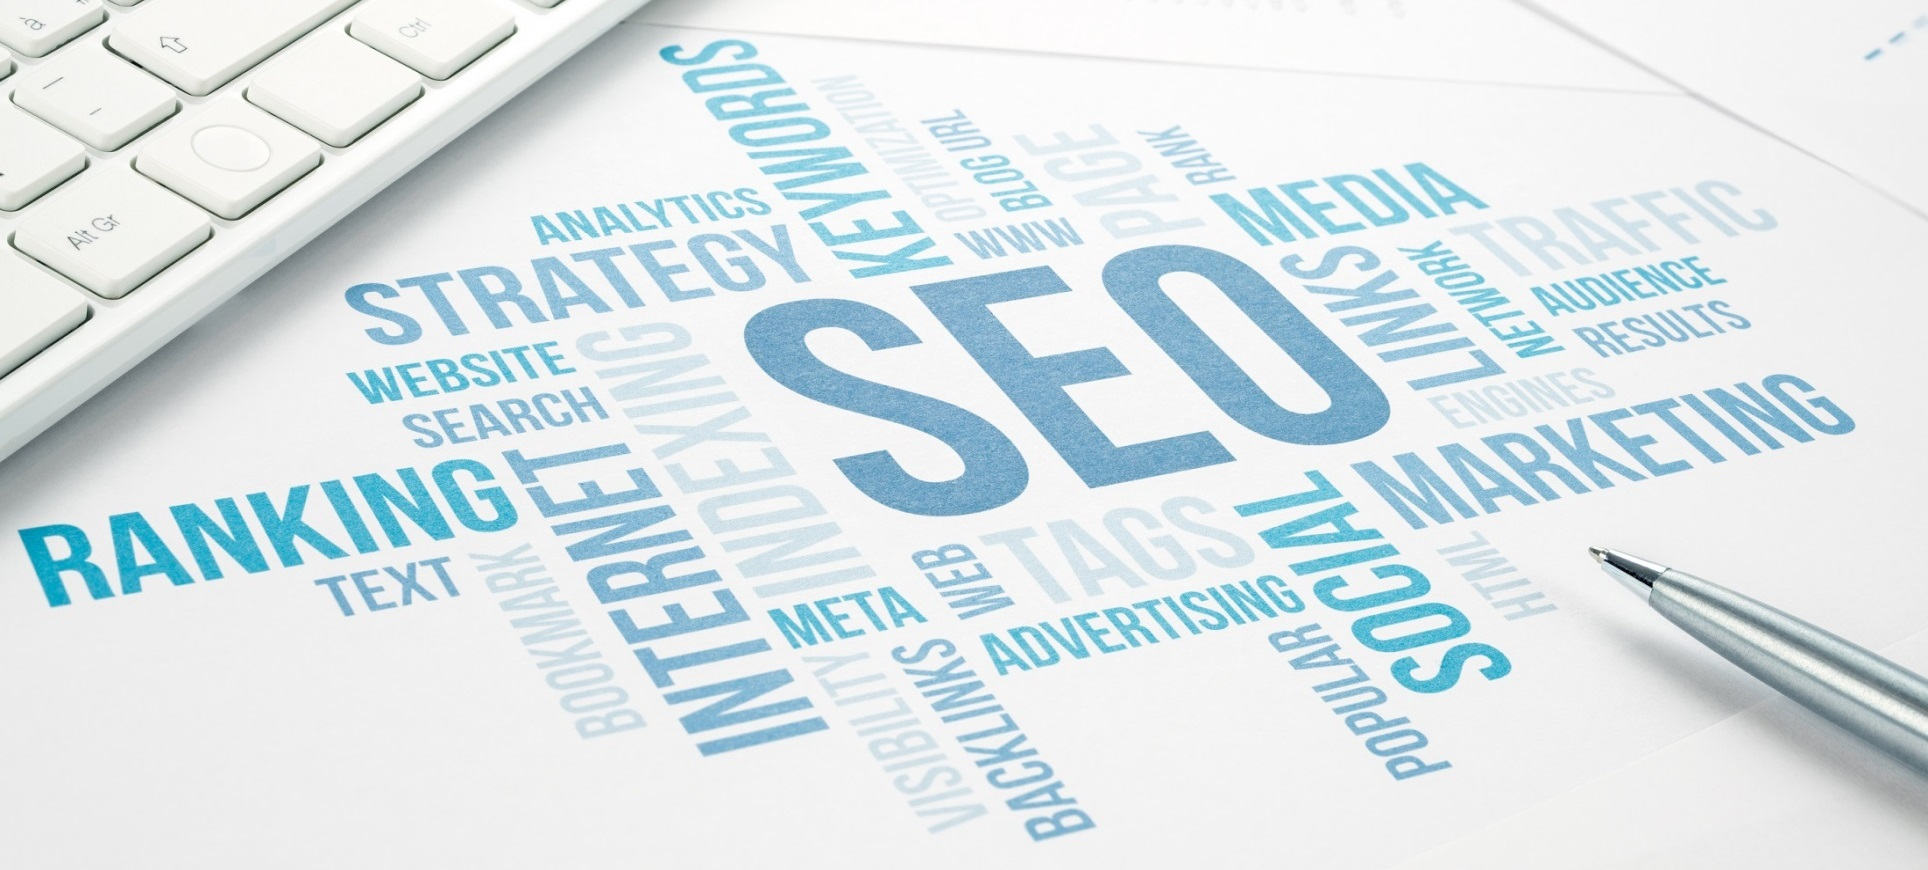 Defining Local SEO Services